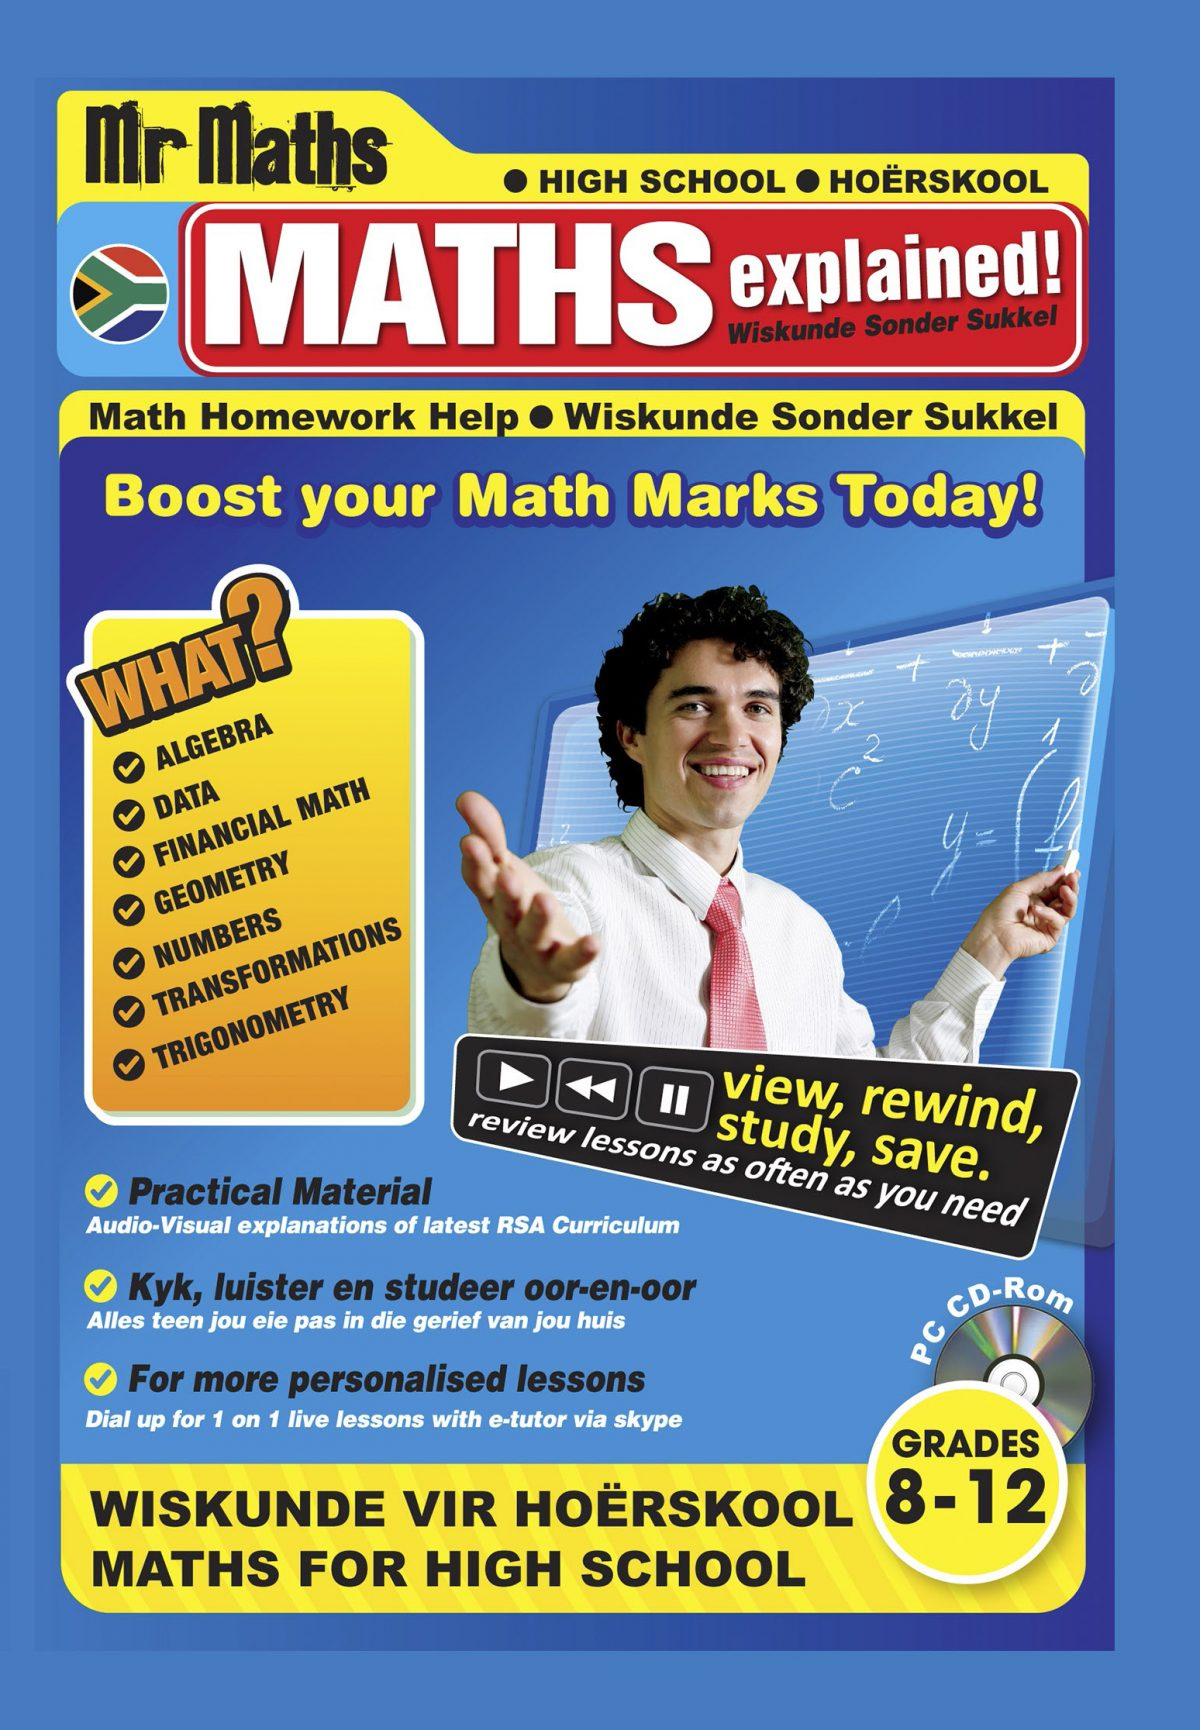 Mr Maths Grd 6 -12 Video lessons